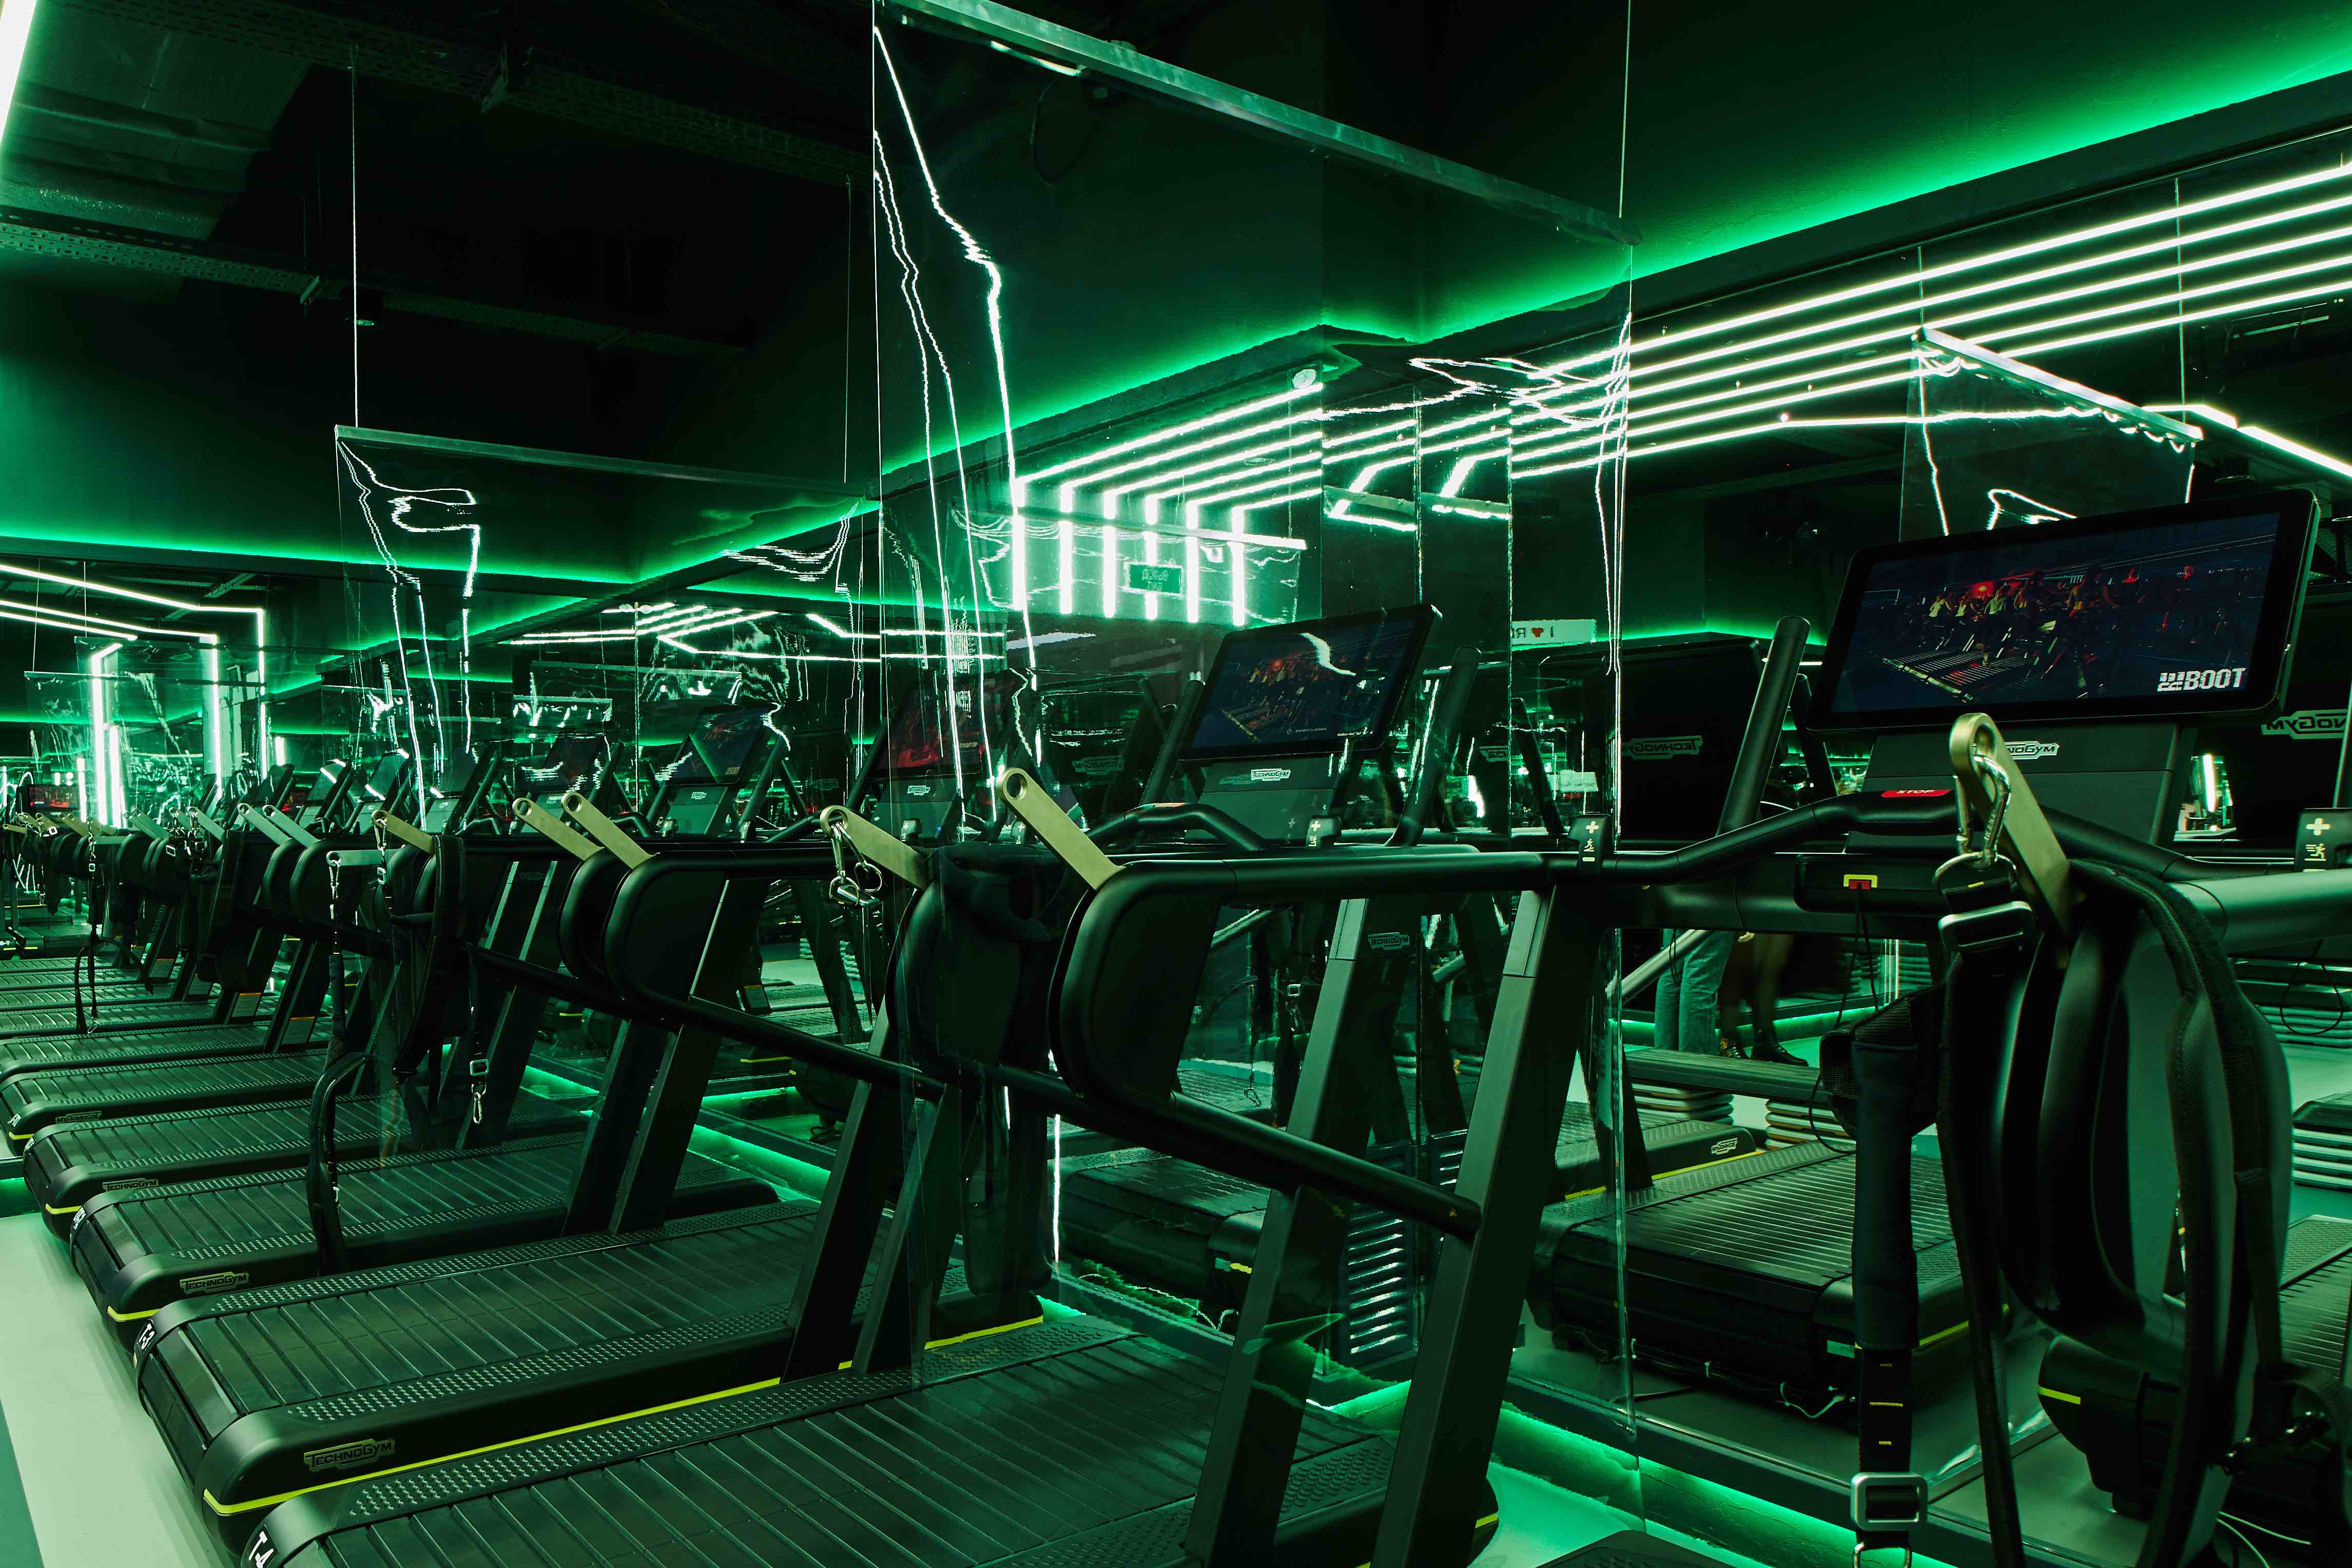 Safety measures. For the safety of our guests, the gyms are equipped with protective screens, ultraviolet air recirculators and disinfectants. Maximum class capacity has been reduced. Learn more here